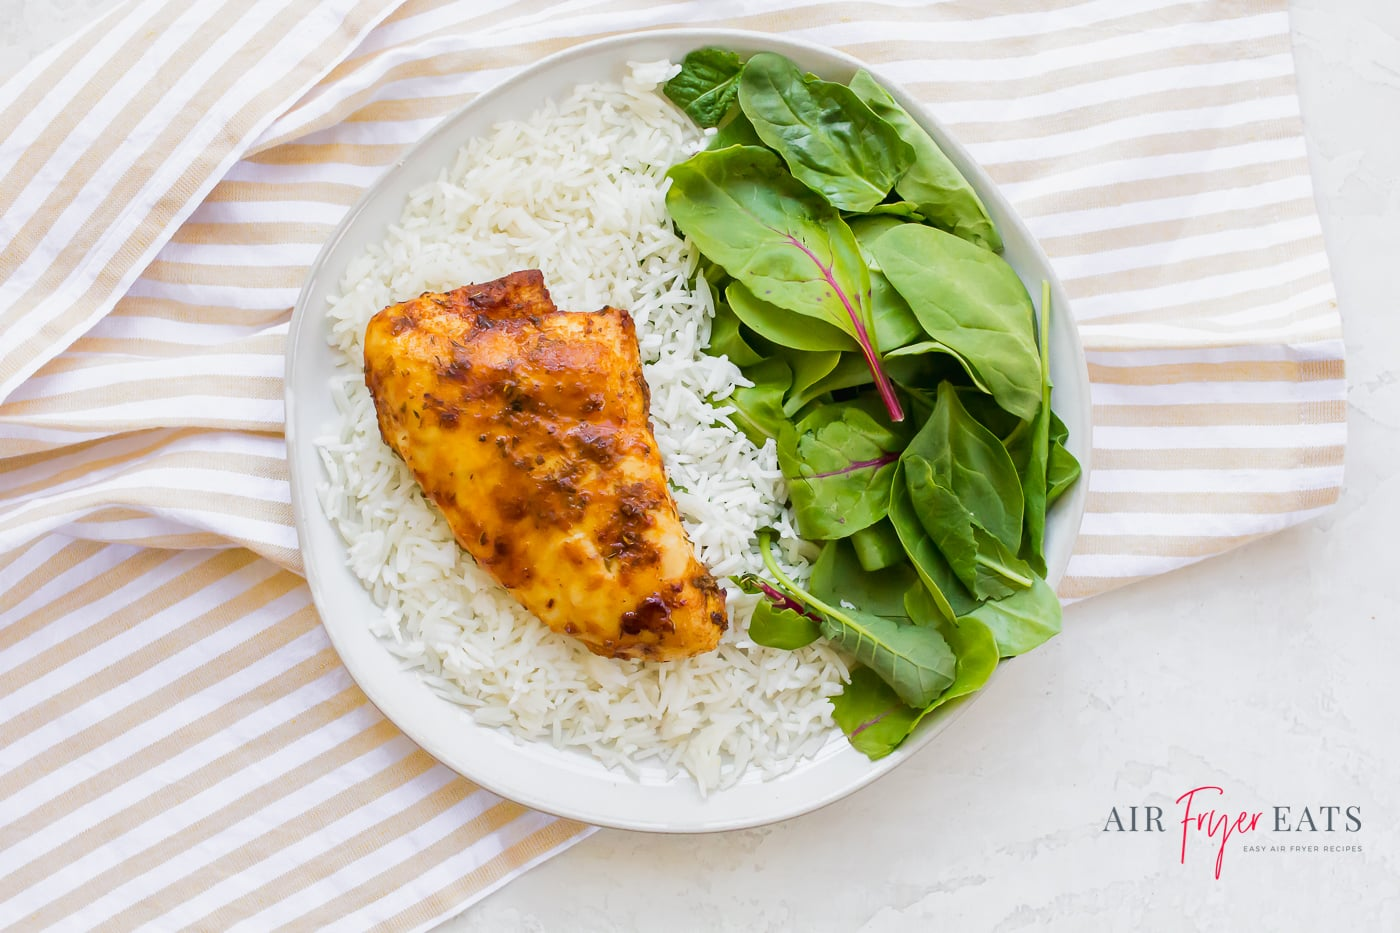 A single chicken breast on a white plate with steamed white rice and a generous helping of fresh spinach